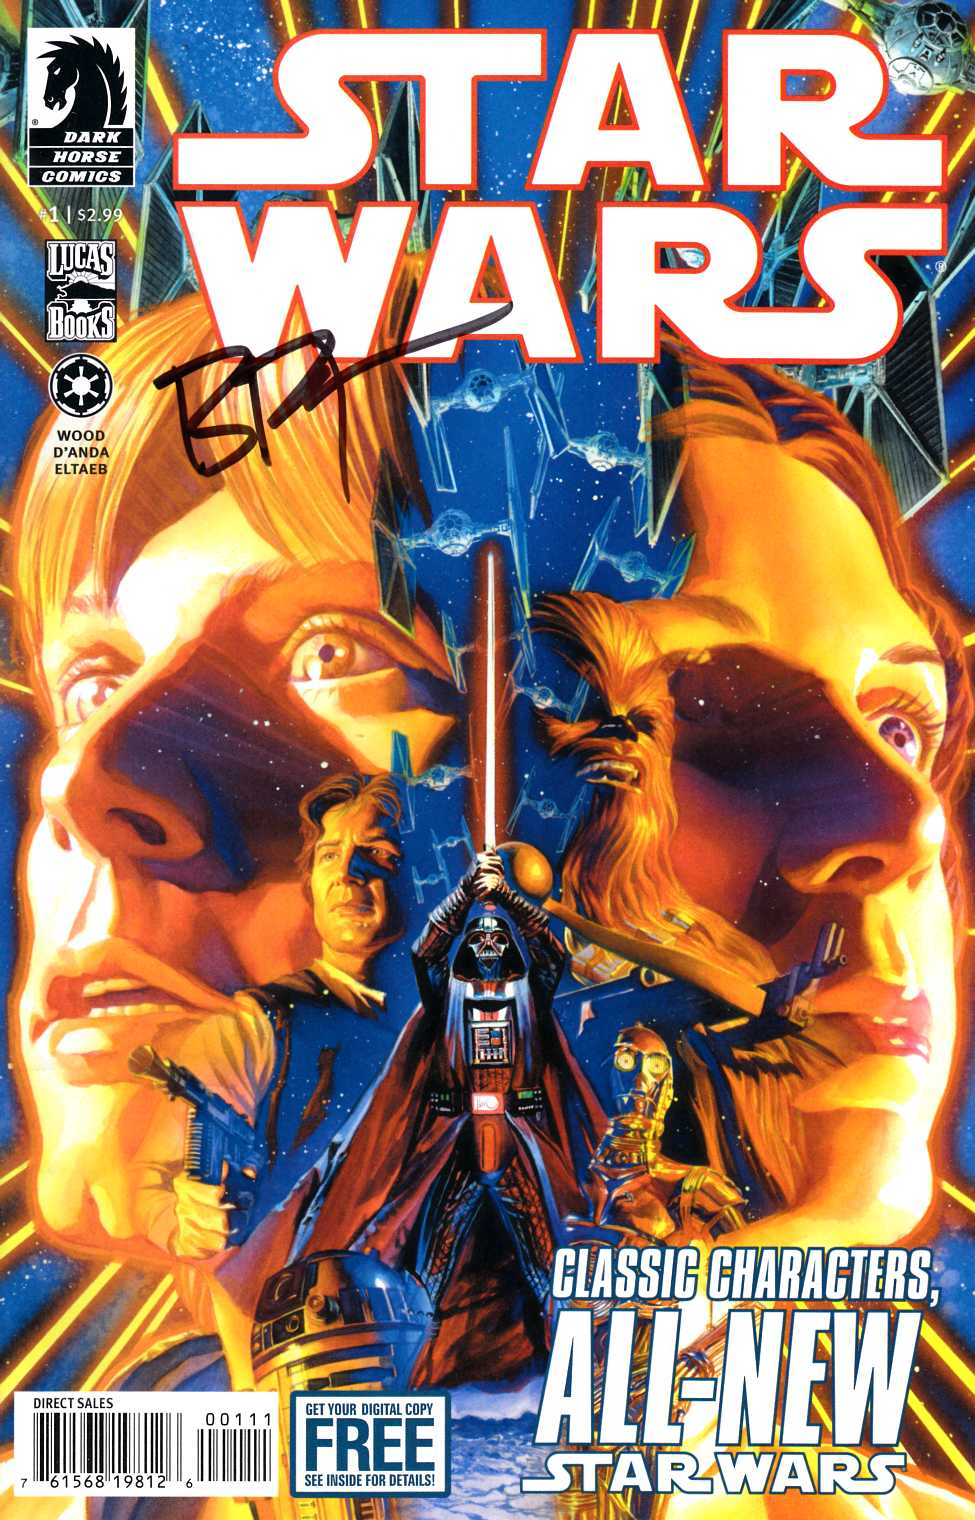 Star Wars #1 Brian Wood Signed Edition [Dark Horse Comic] THUMBNAIL